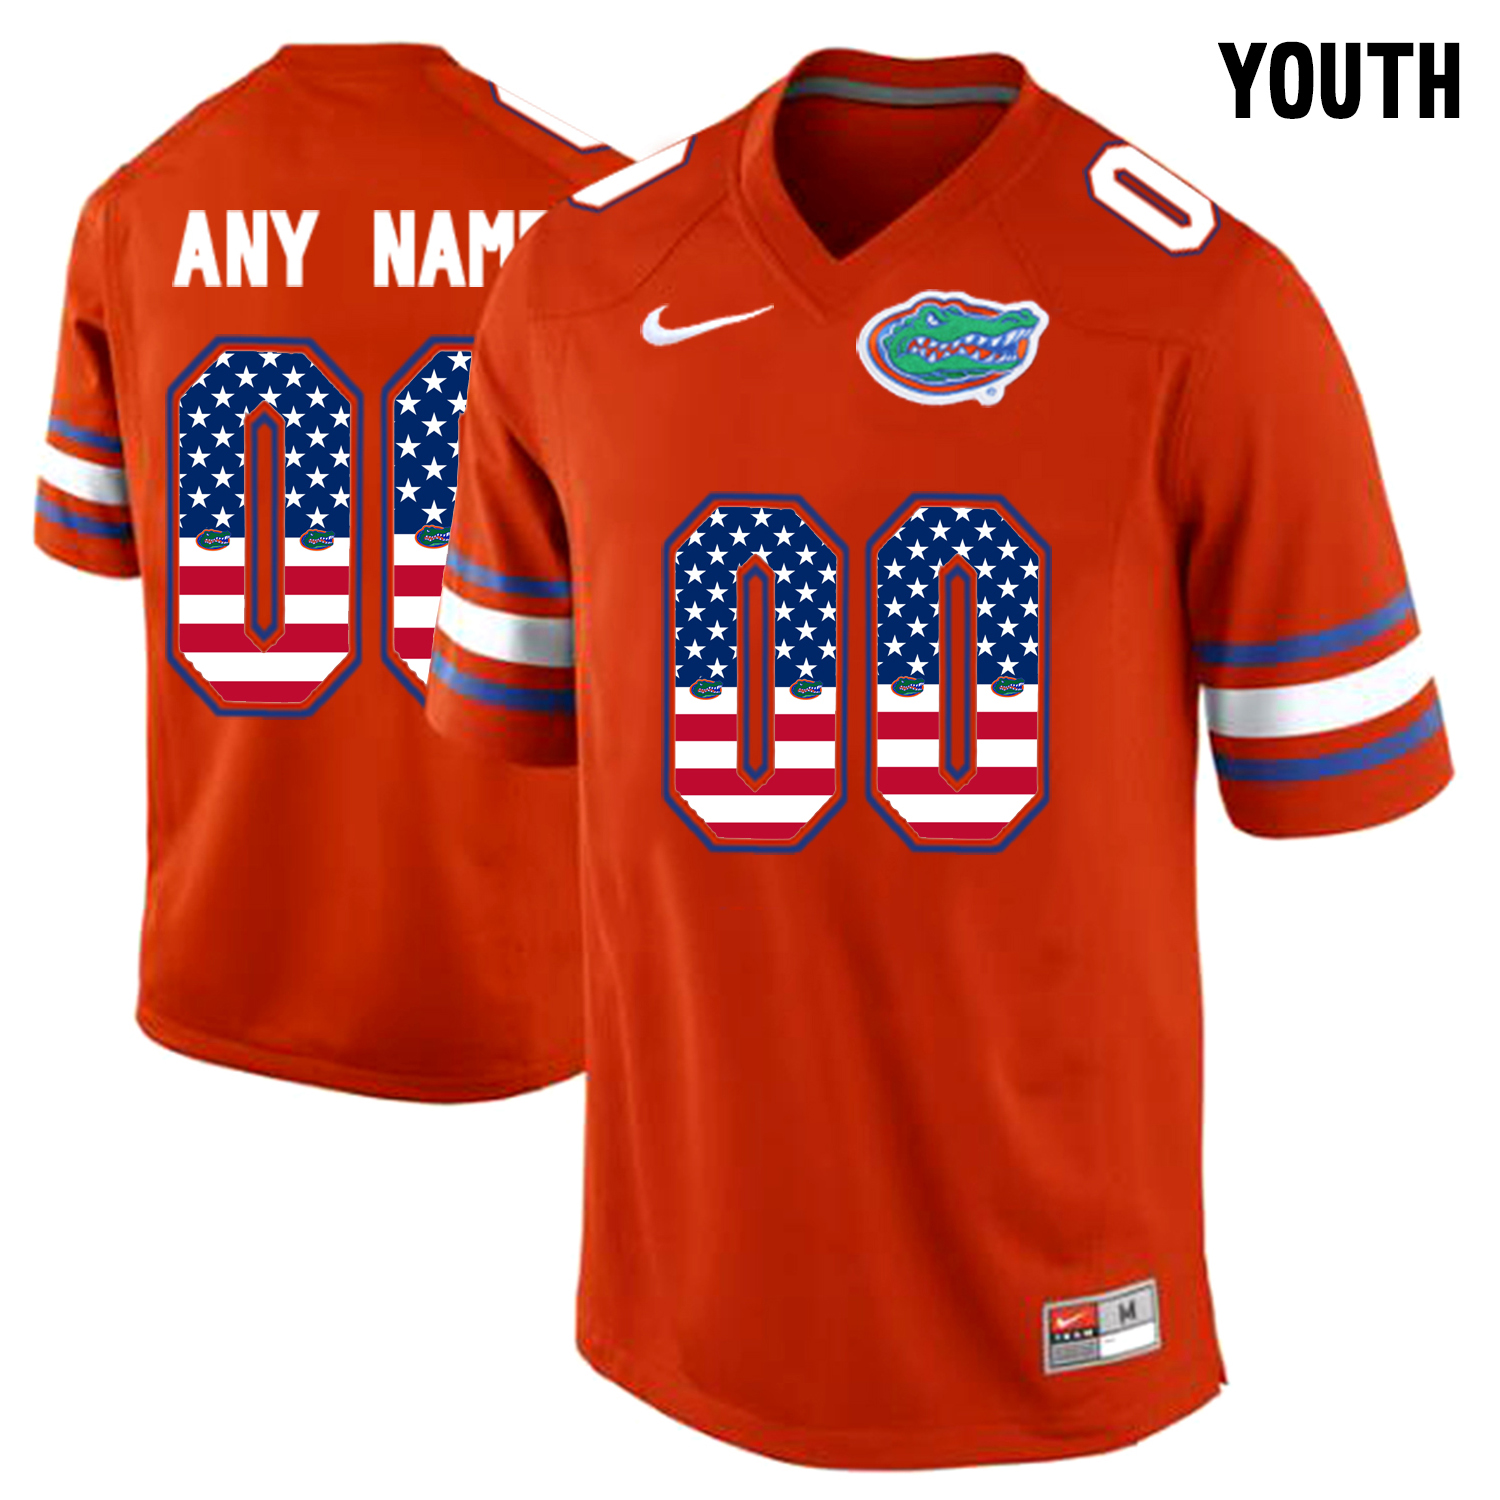 2016 US Flag Fashion Youth Florida Gators Customized College Football Jersey Orange